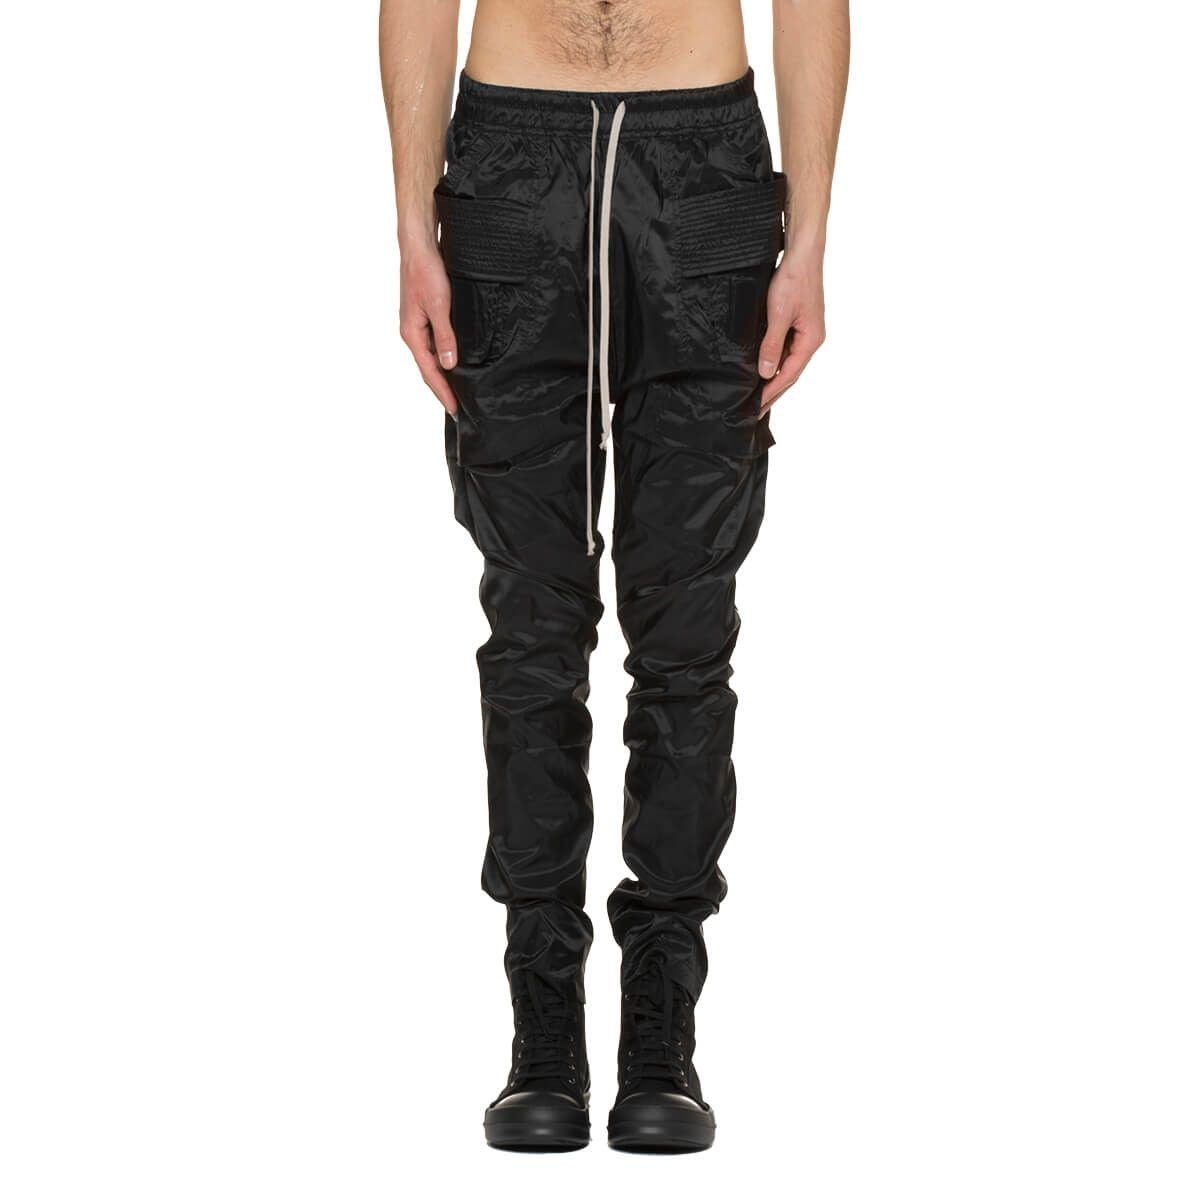 47ed108989b Creatch cargo from the S S2018 Rick Owens DRKSHDW collection in black